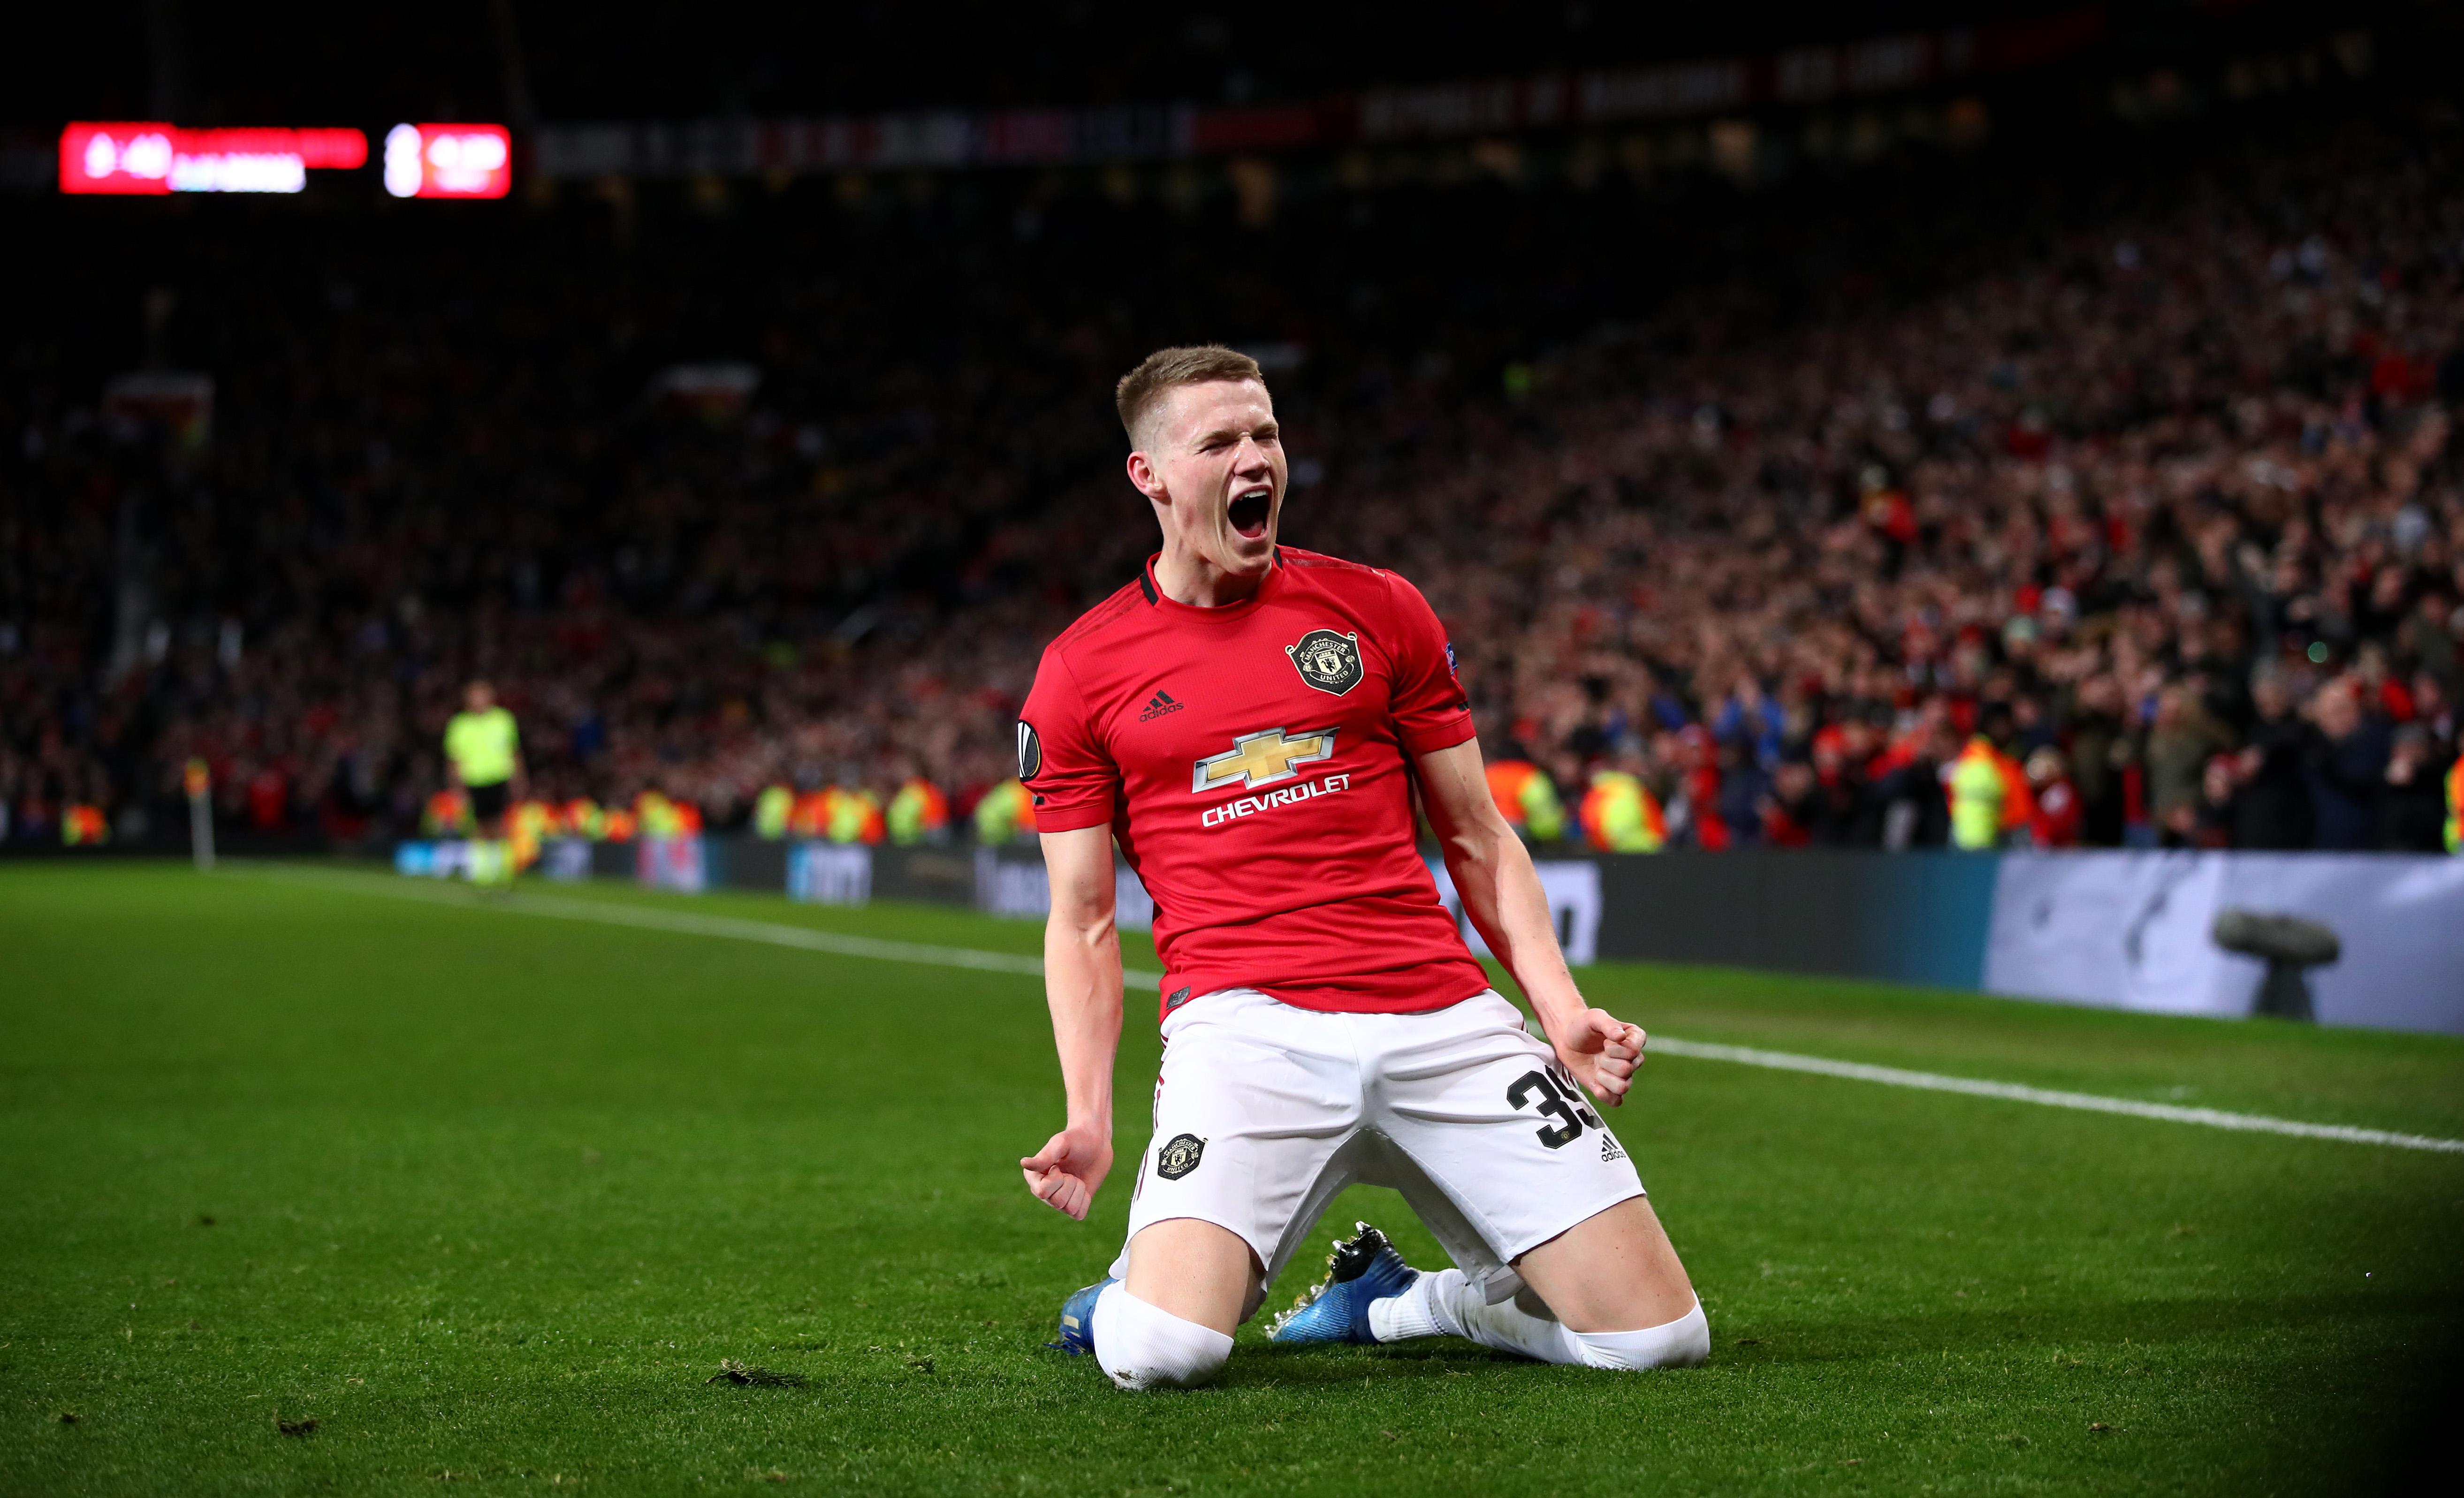 McTominay scored on his first start since December (Photo by Clive Brunskill/Getty Images)